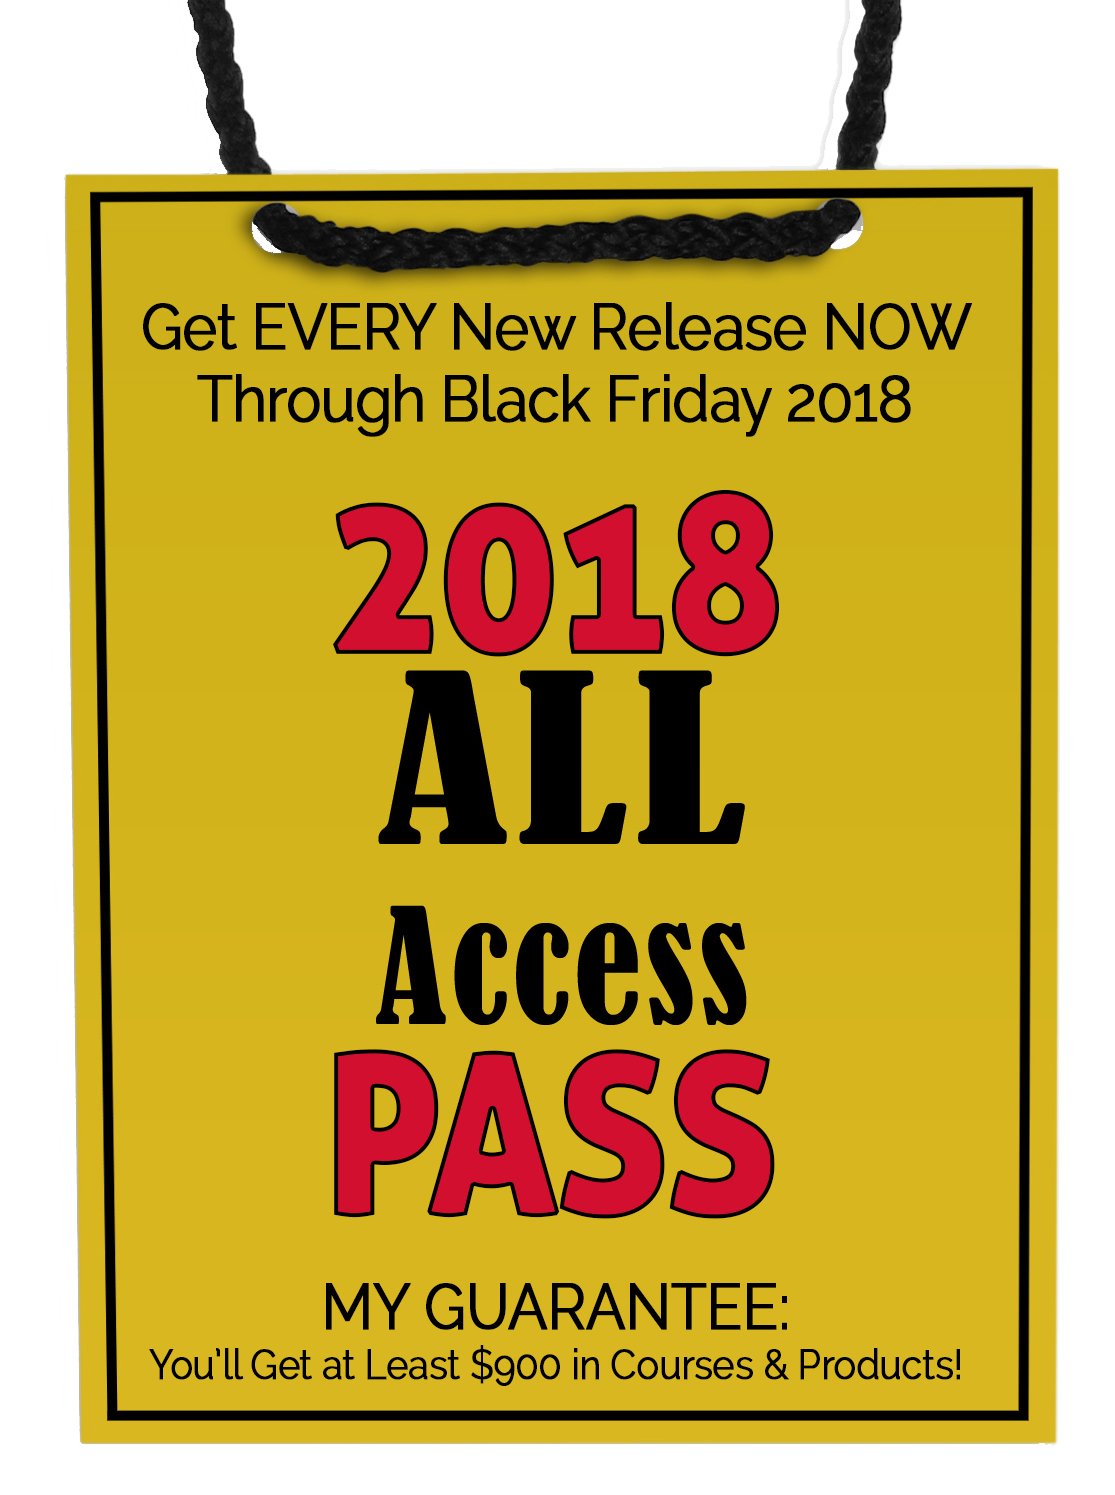 The All Access Pass